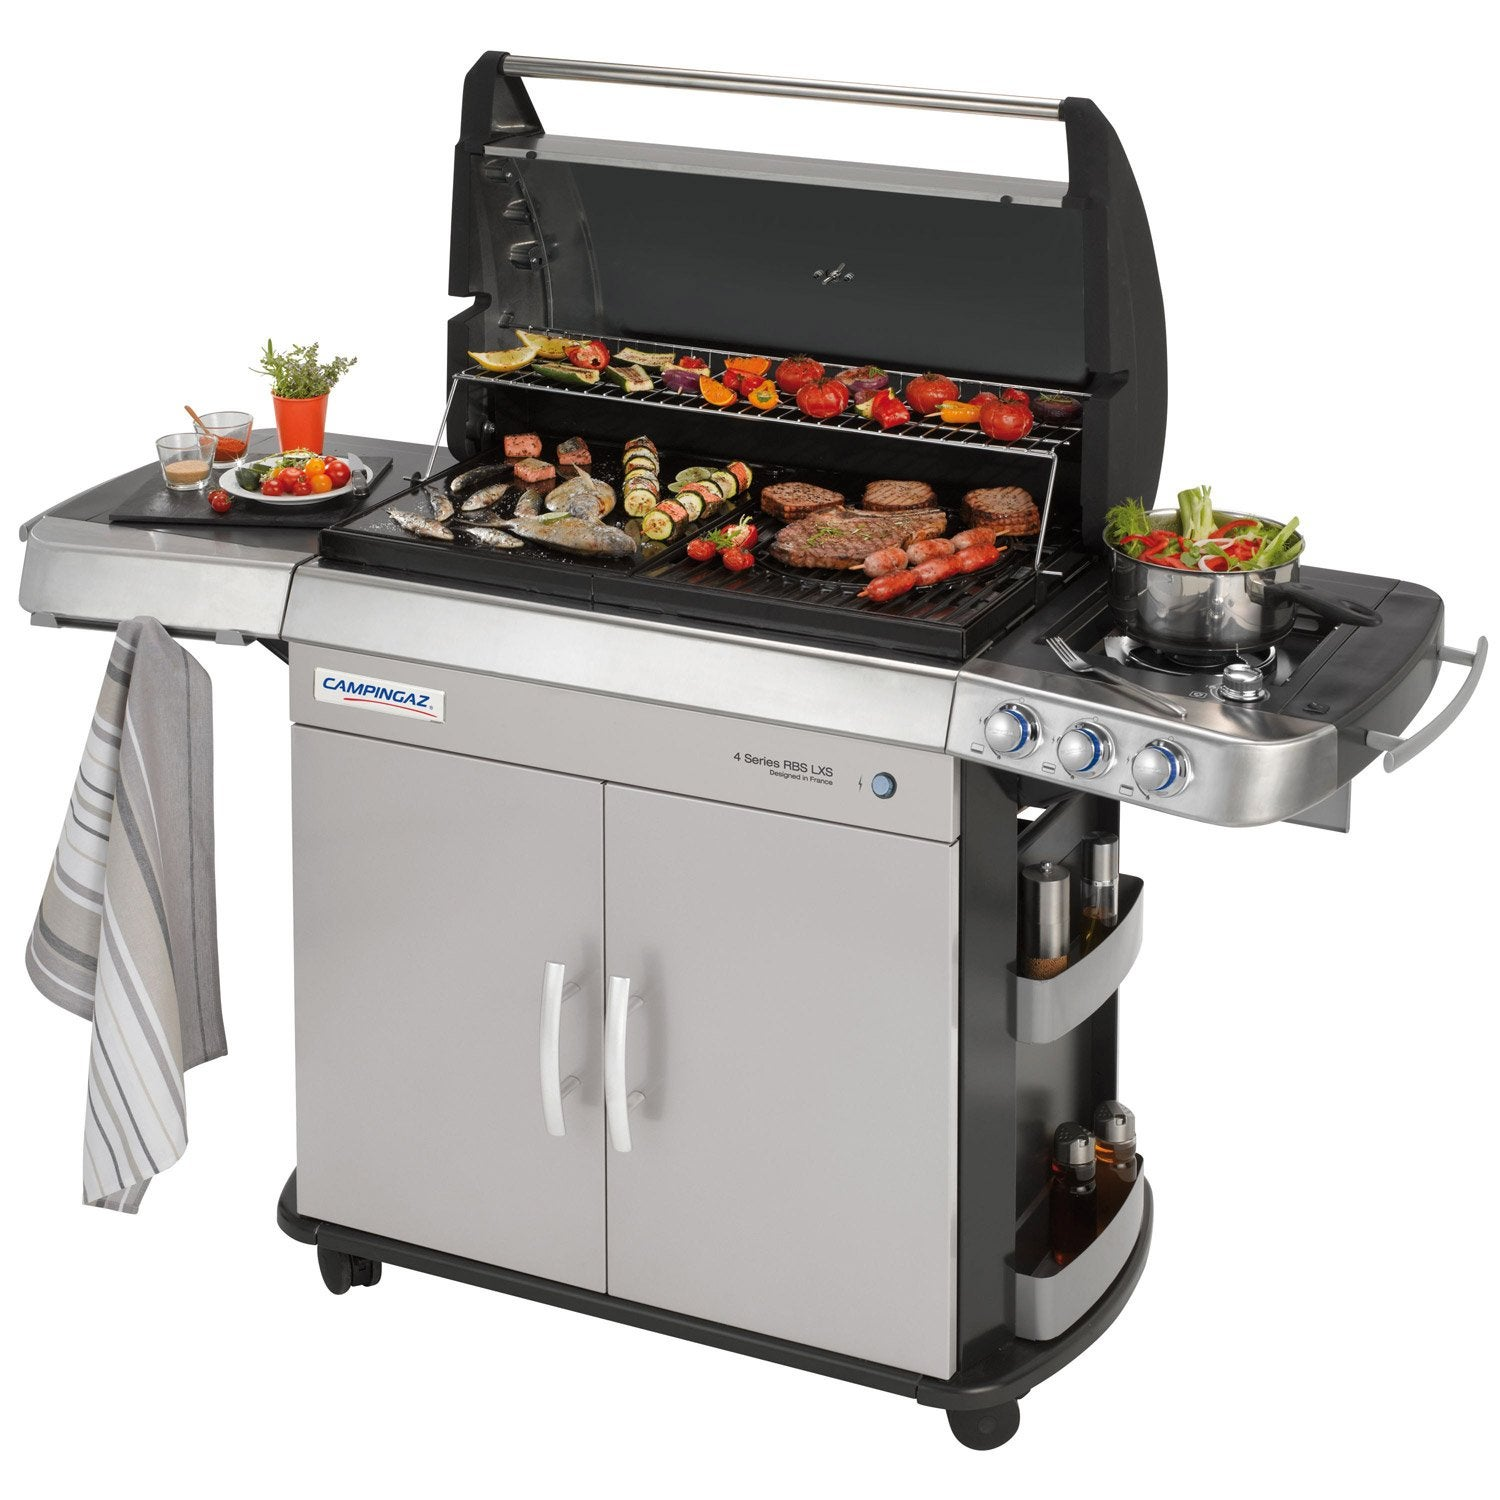 Barbecue au gaz campingaz 4 s ries rbs gris leroy merlin for Barbecue le roy merlin